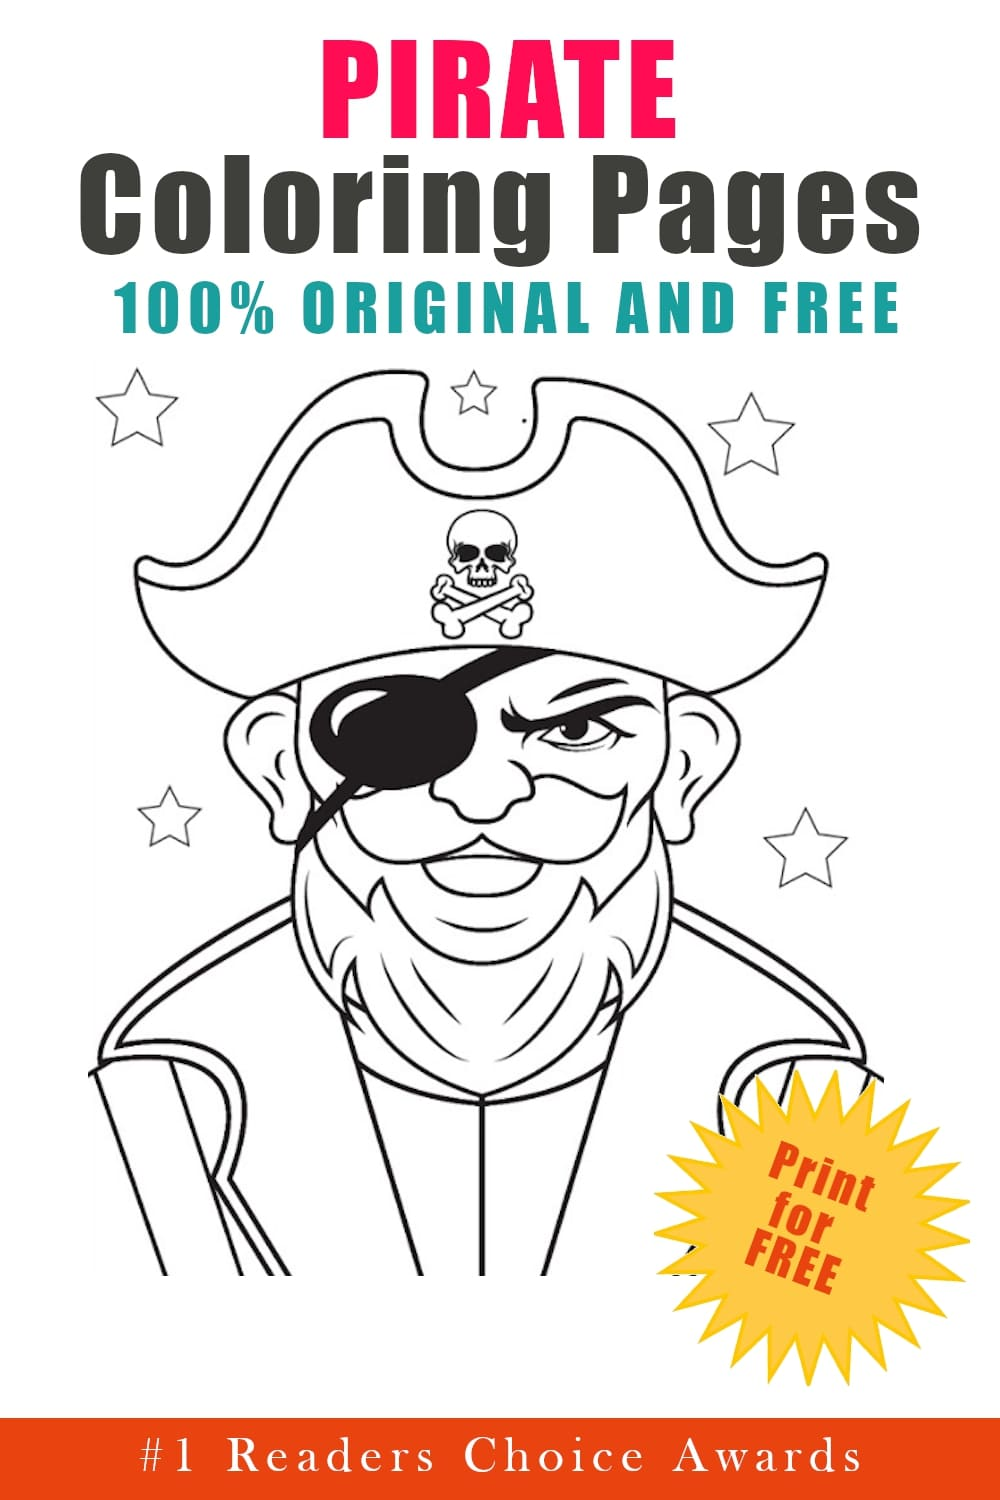 original and free pirate coloring pages printable